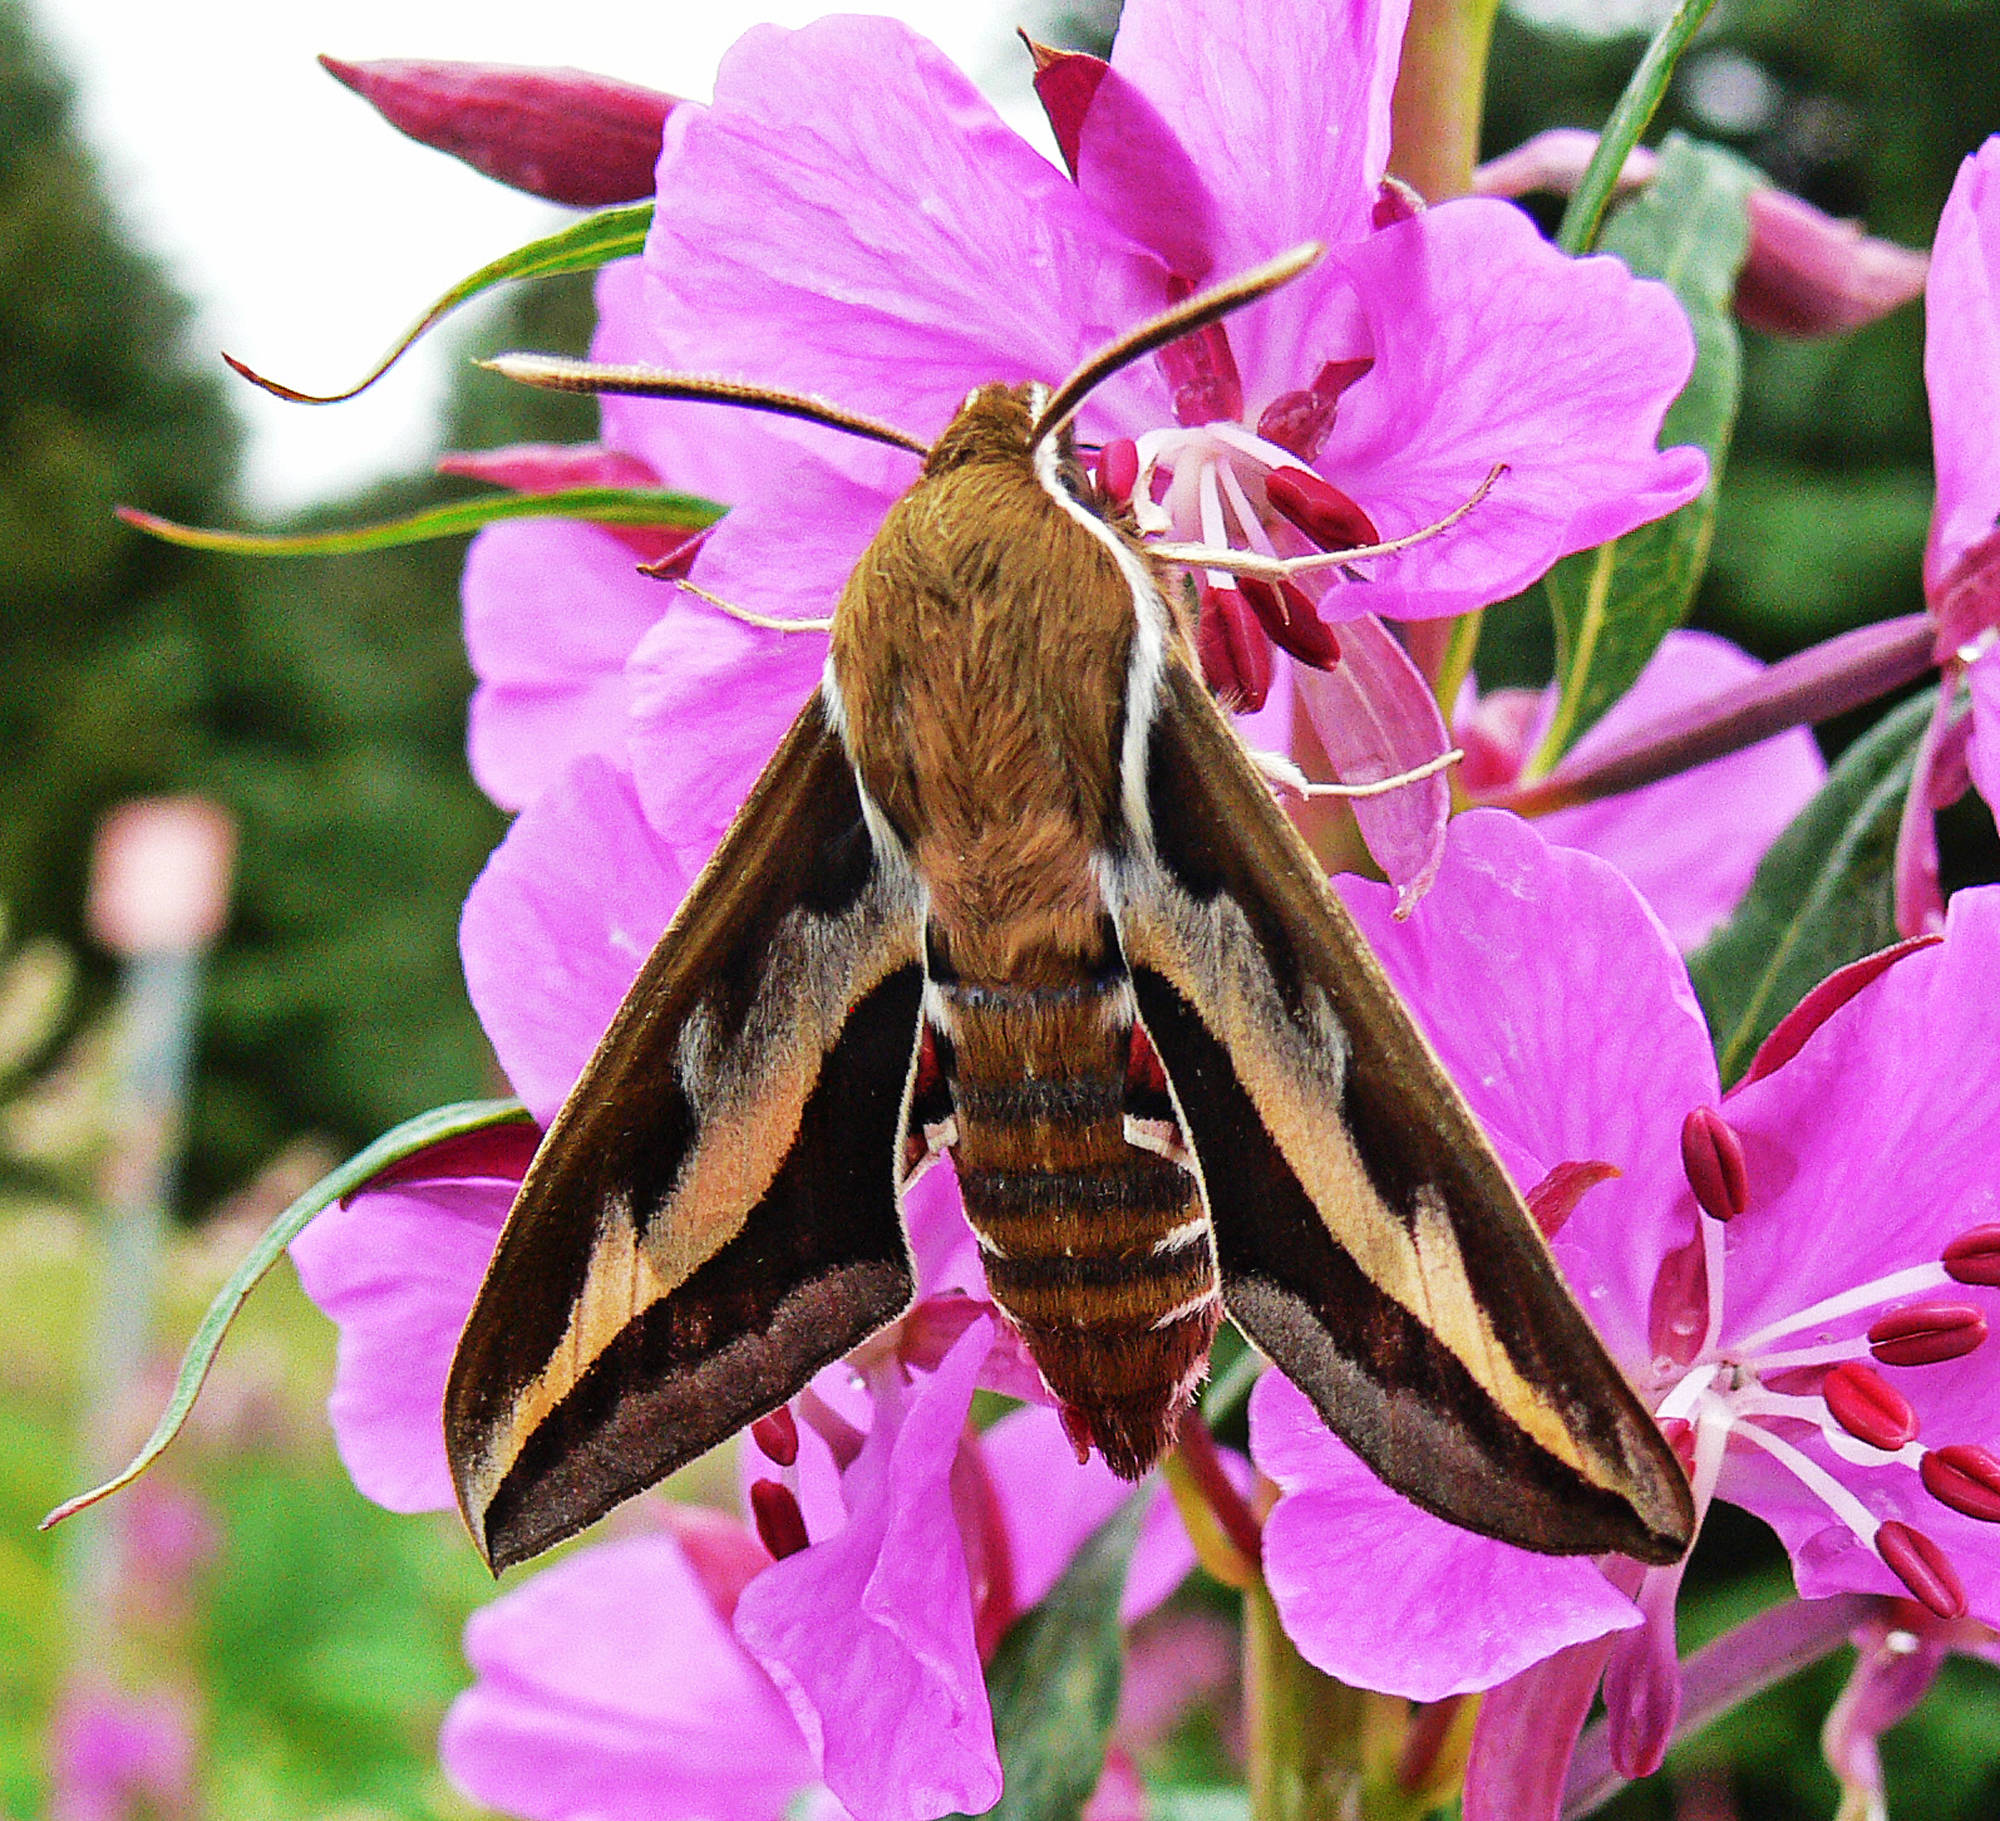 Many hawk moths have long proboscides suitable for extracting nectar from the long nectar spurs of certain flowers. (Courtesy photo   Bob Armstrong)